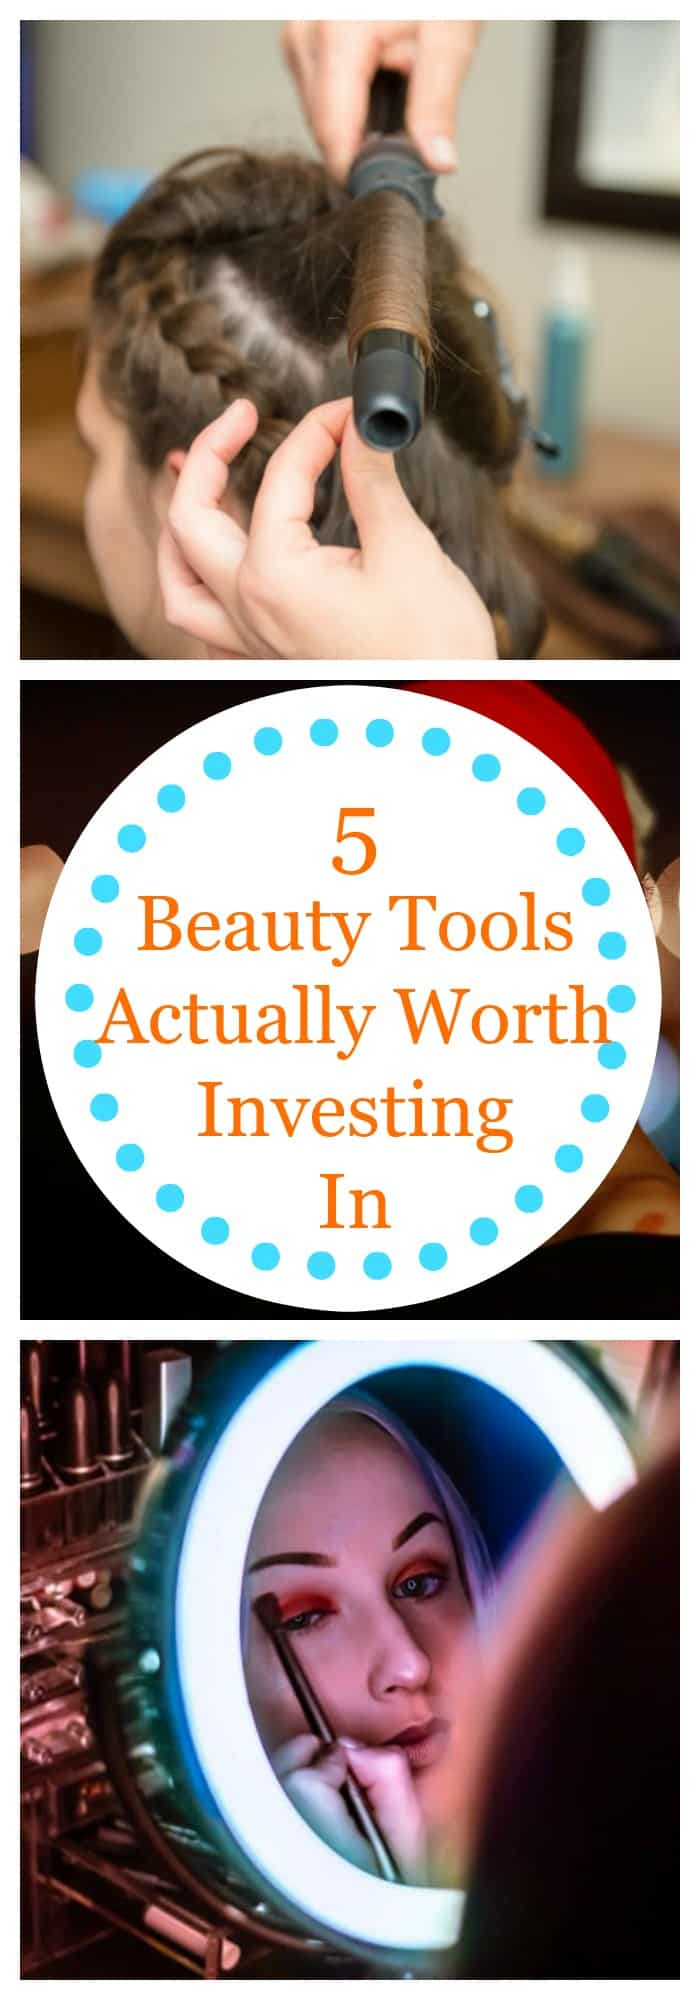 5 Beauty Tools Actually Worth Investing In